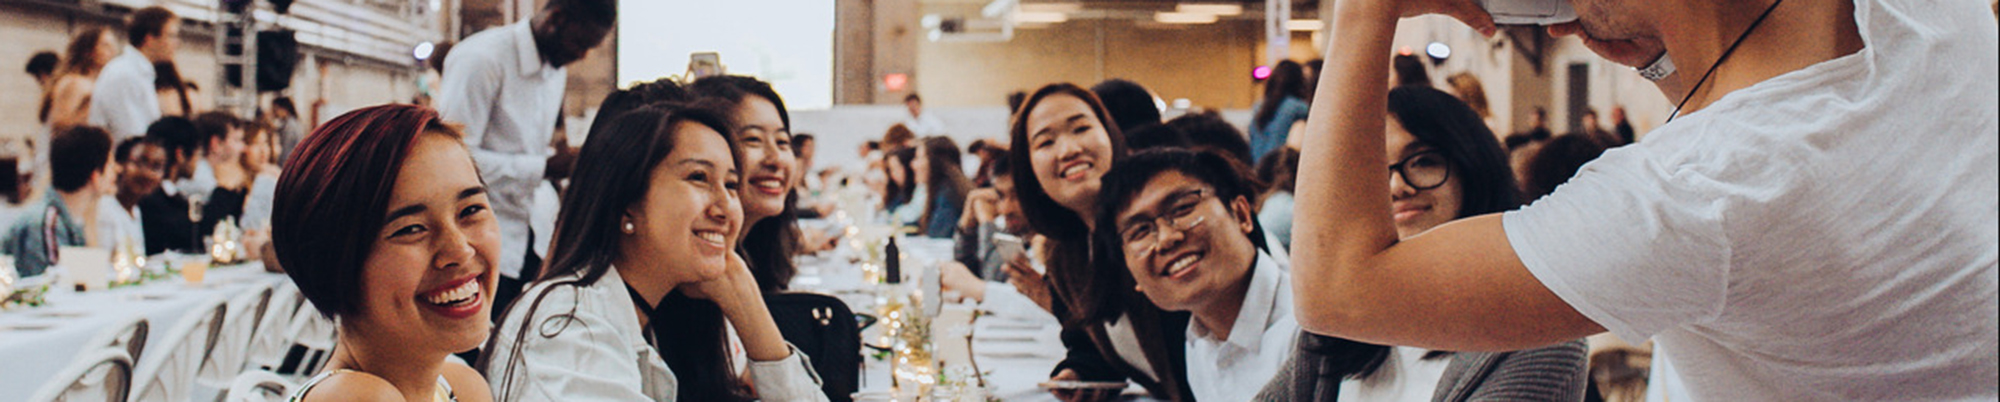 Lehigh Student Senate hosted their first annual Dîner en Blanc